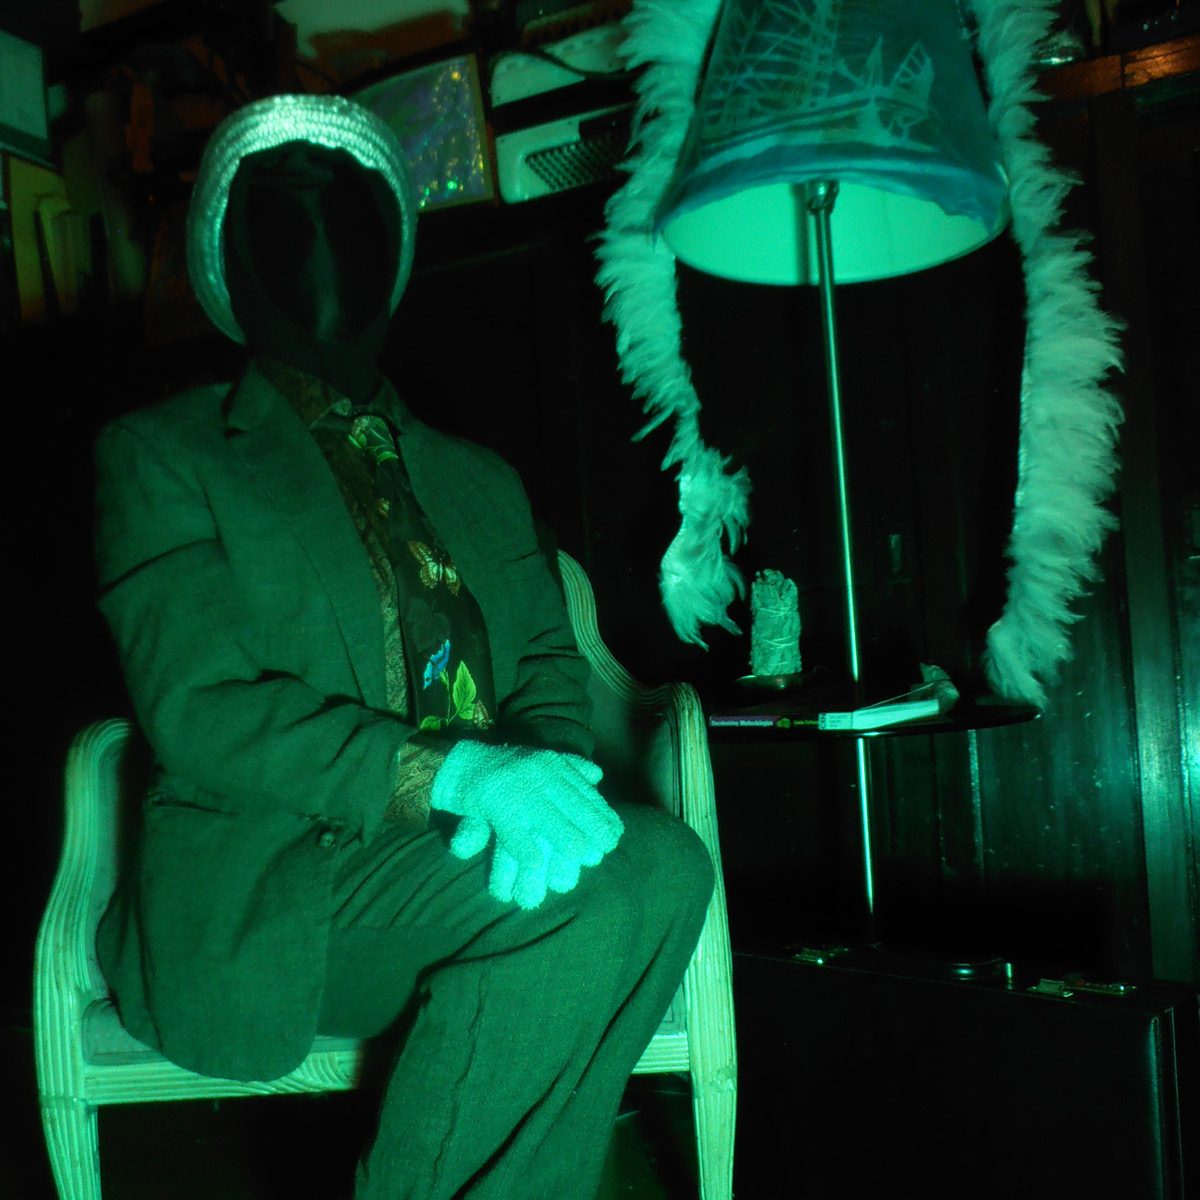 Image of person sitting in a chair with hands cross on their knees next to a table lamp. There is a teal lighting overall.